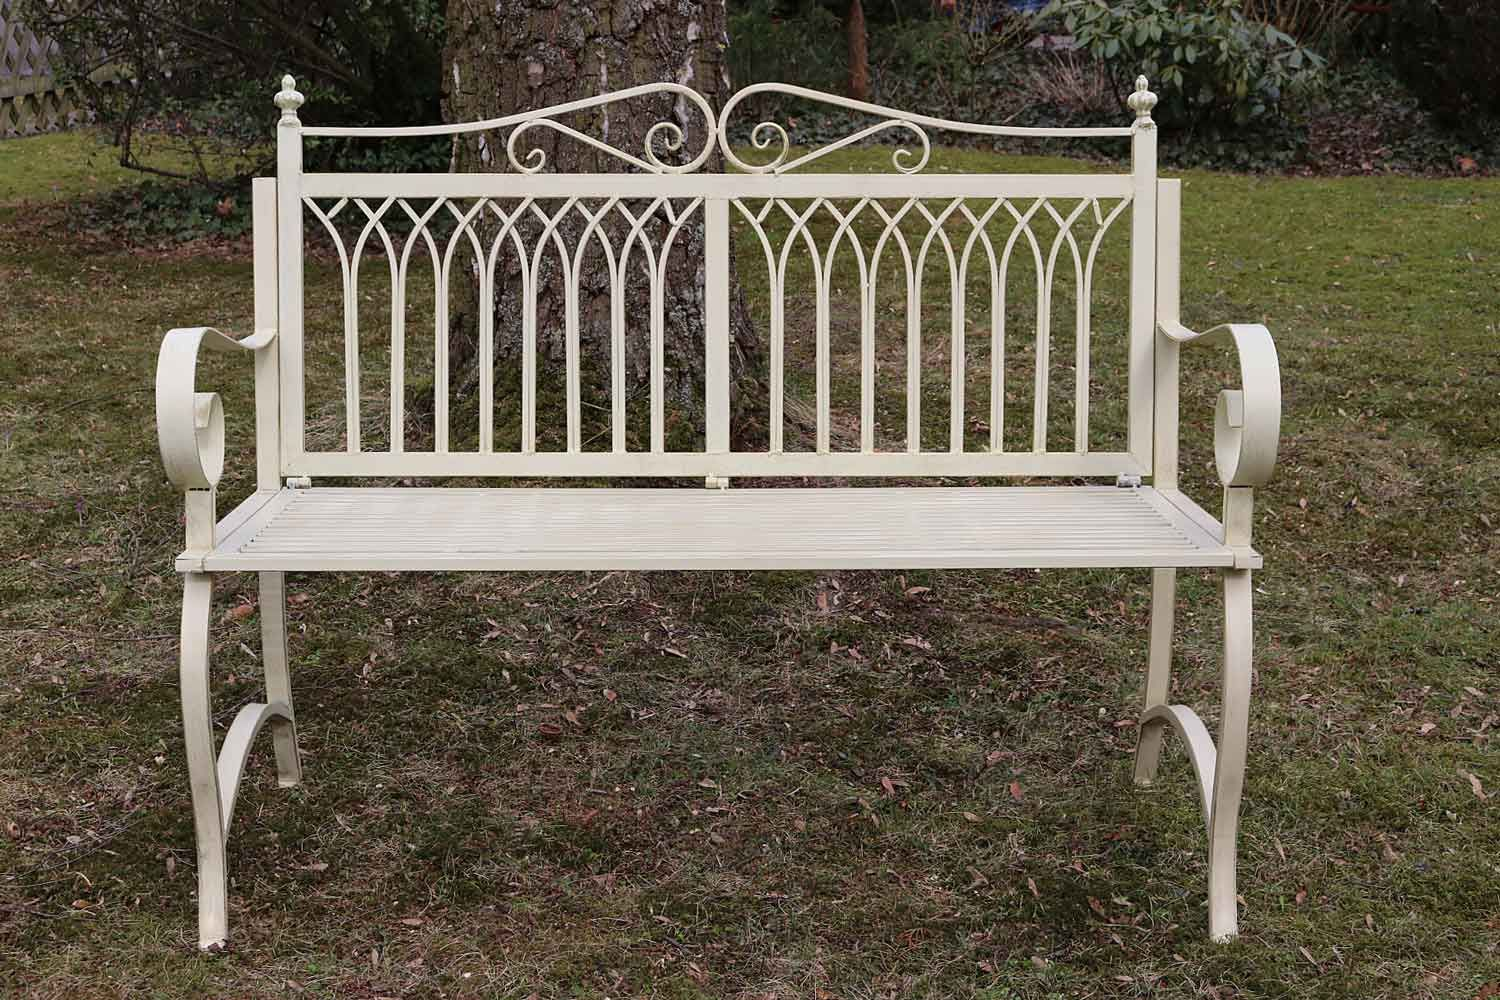 gartenbank bank antik stil garten metall creme wei gartenm bel parkbank 119cm ebay. Black Bedroom Furniture Sets. Home Design Ideas